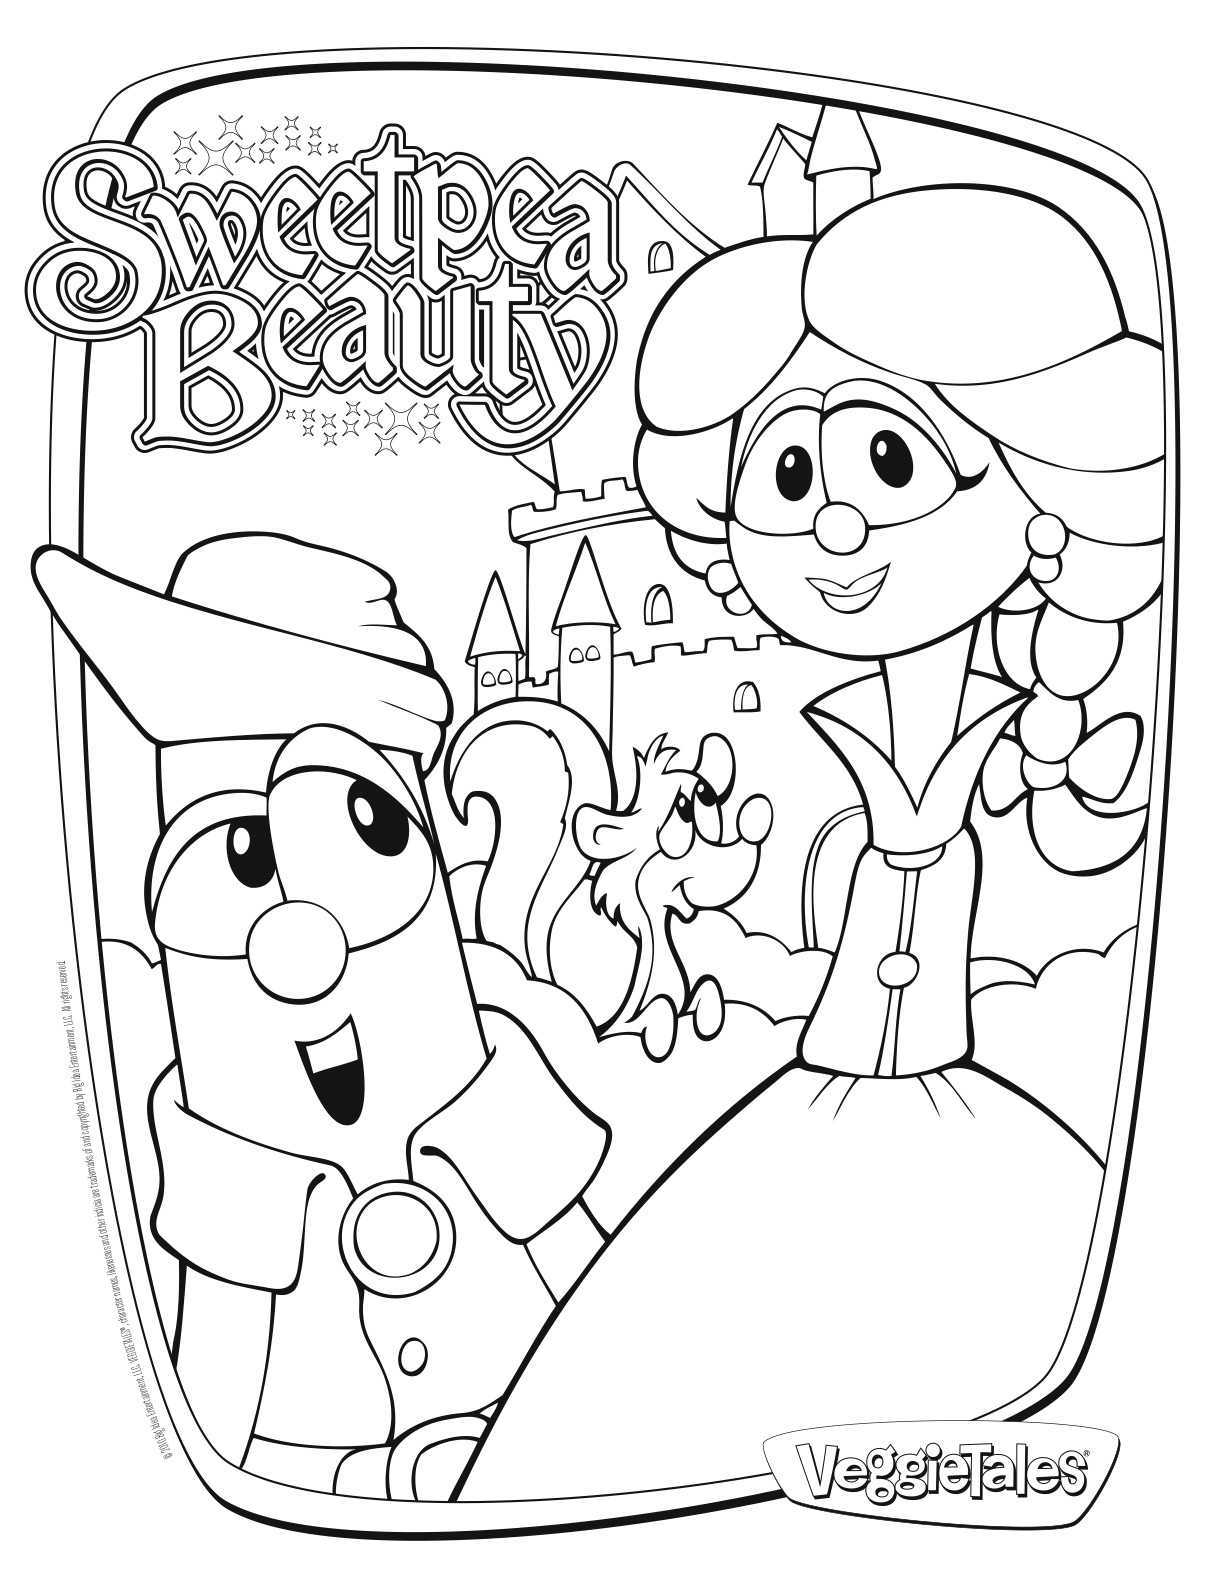 coloring pictures veggie-tales,printable,coloring pages